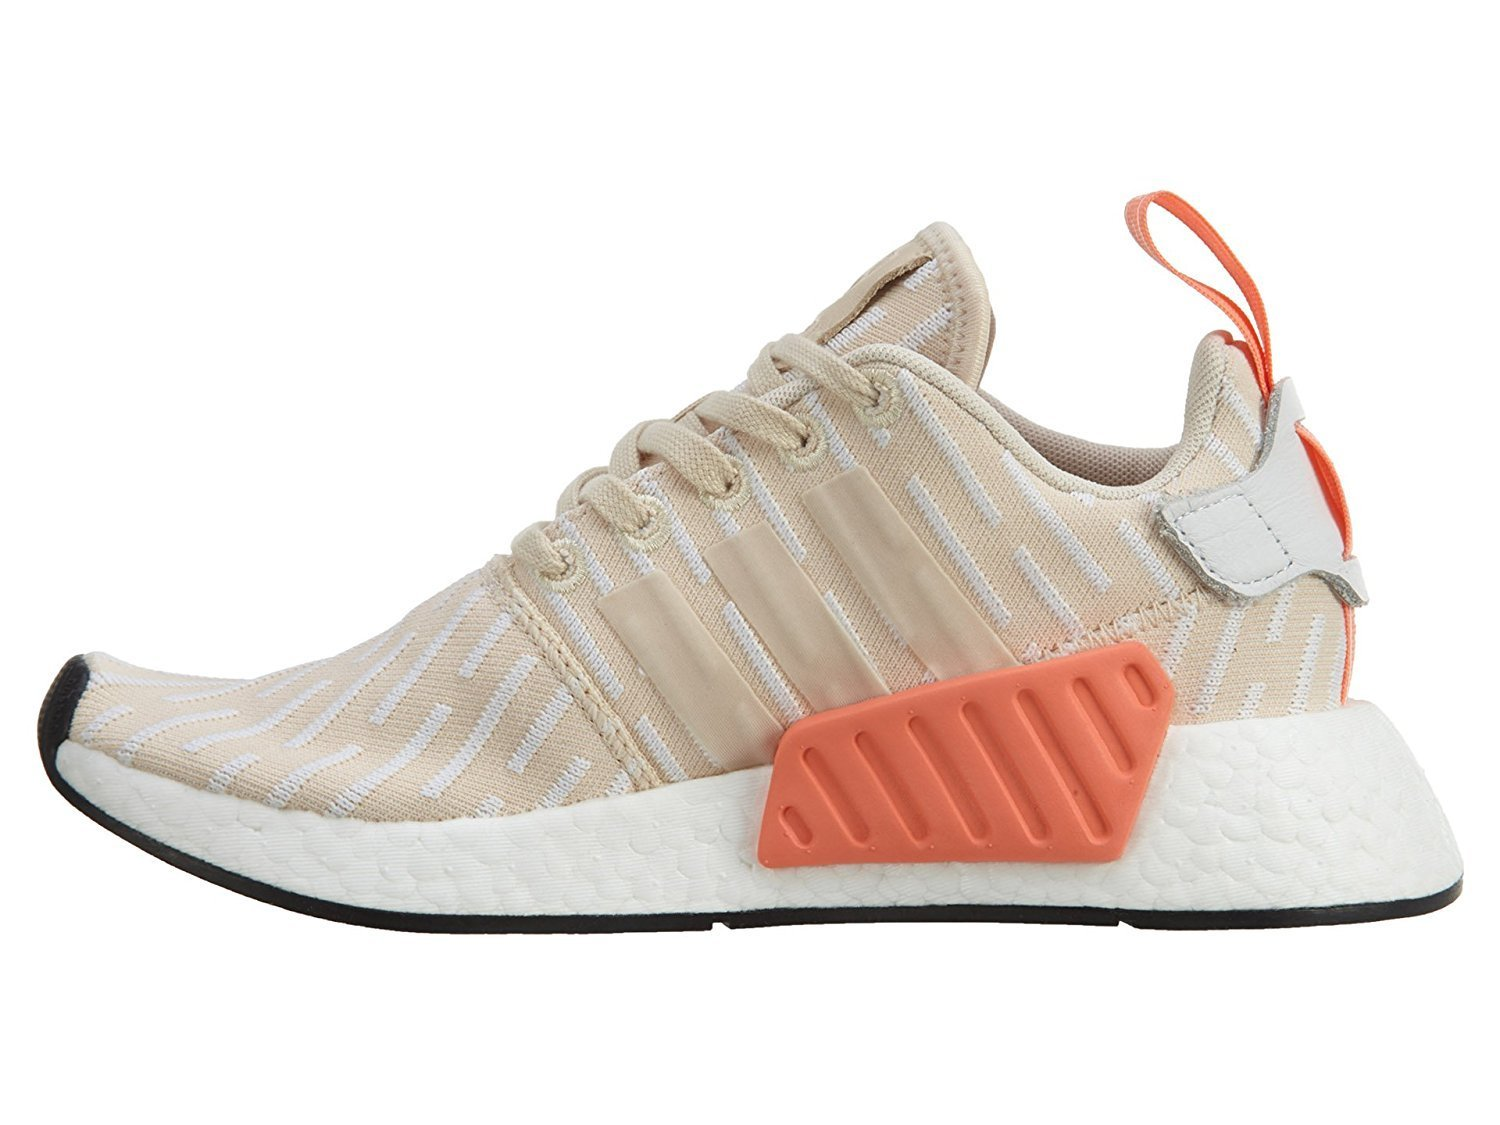 Adidas Nmd_r2 Womens Style: BA7260-Linen Size: 10 M US